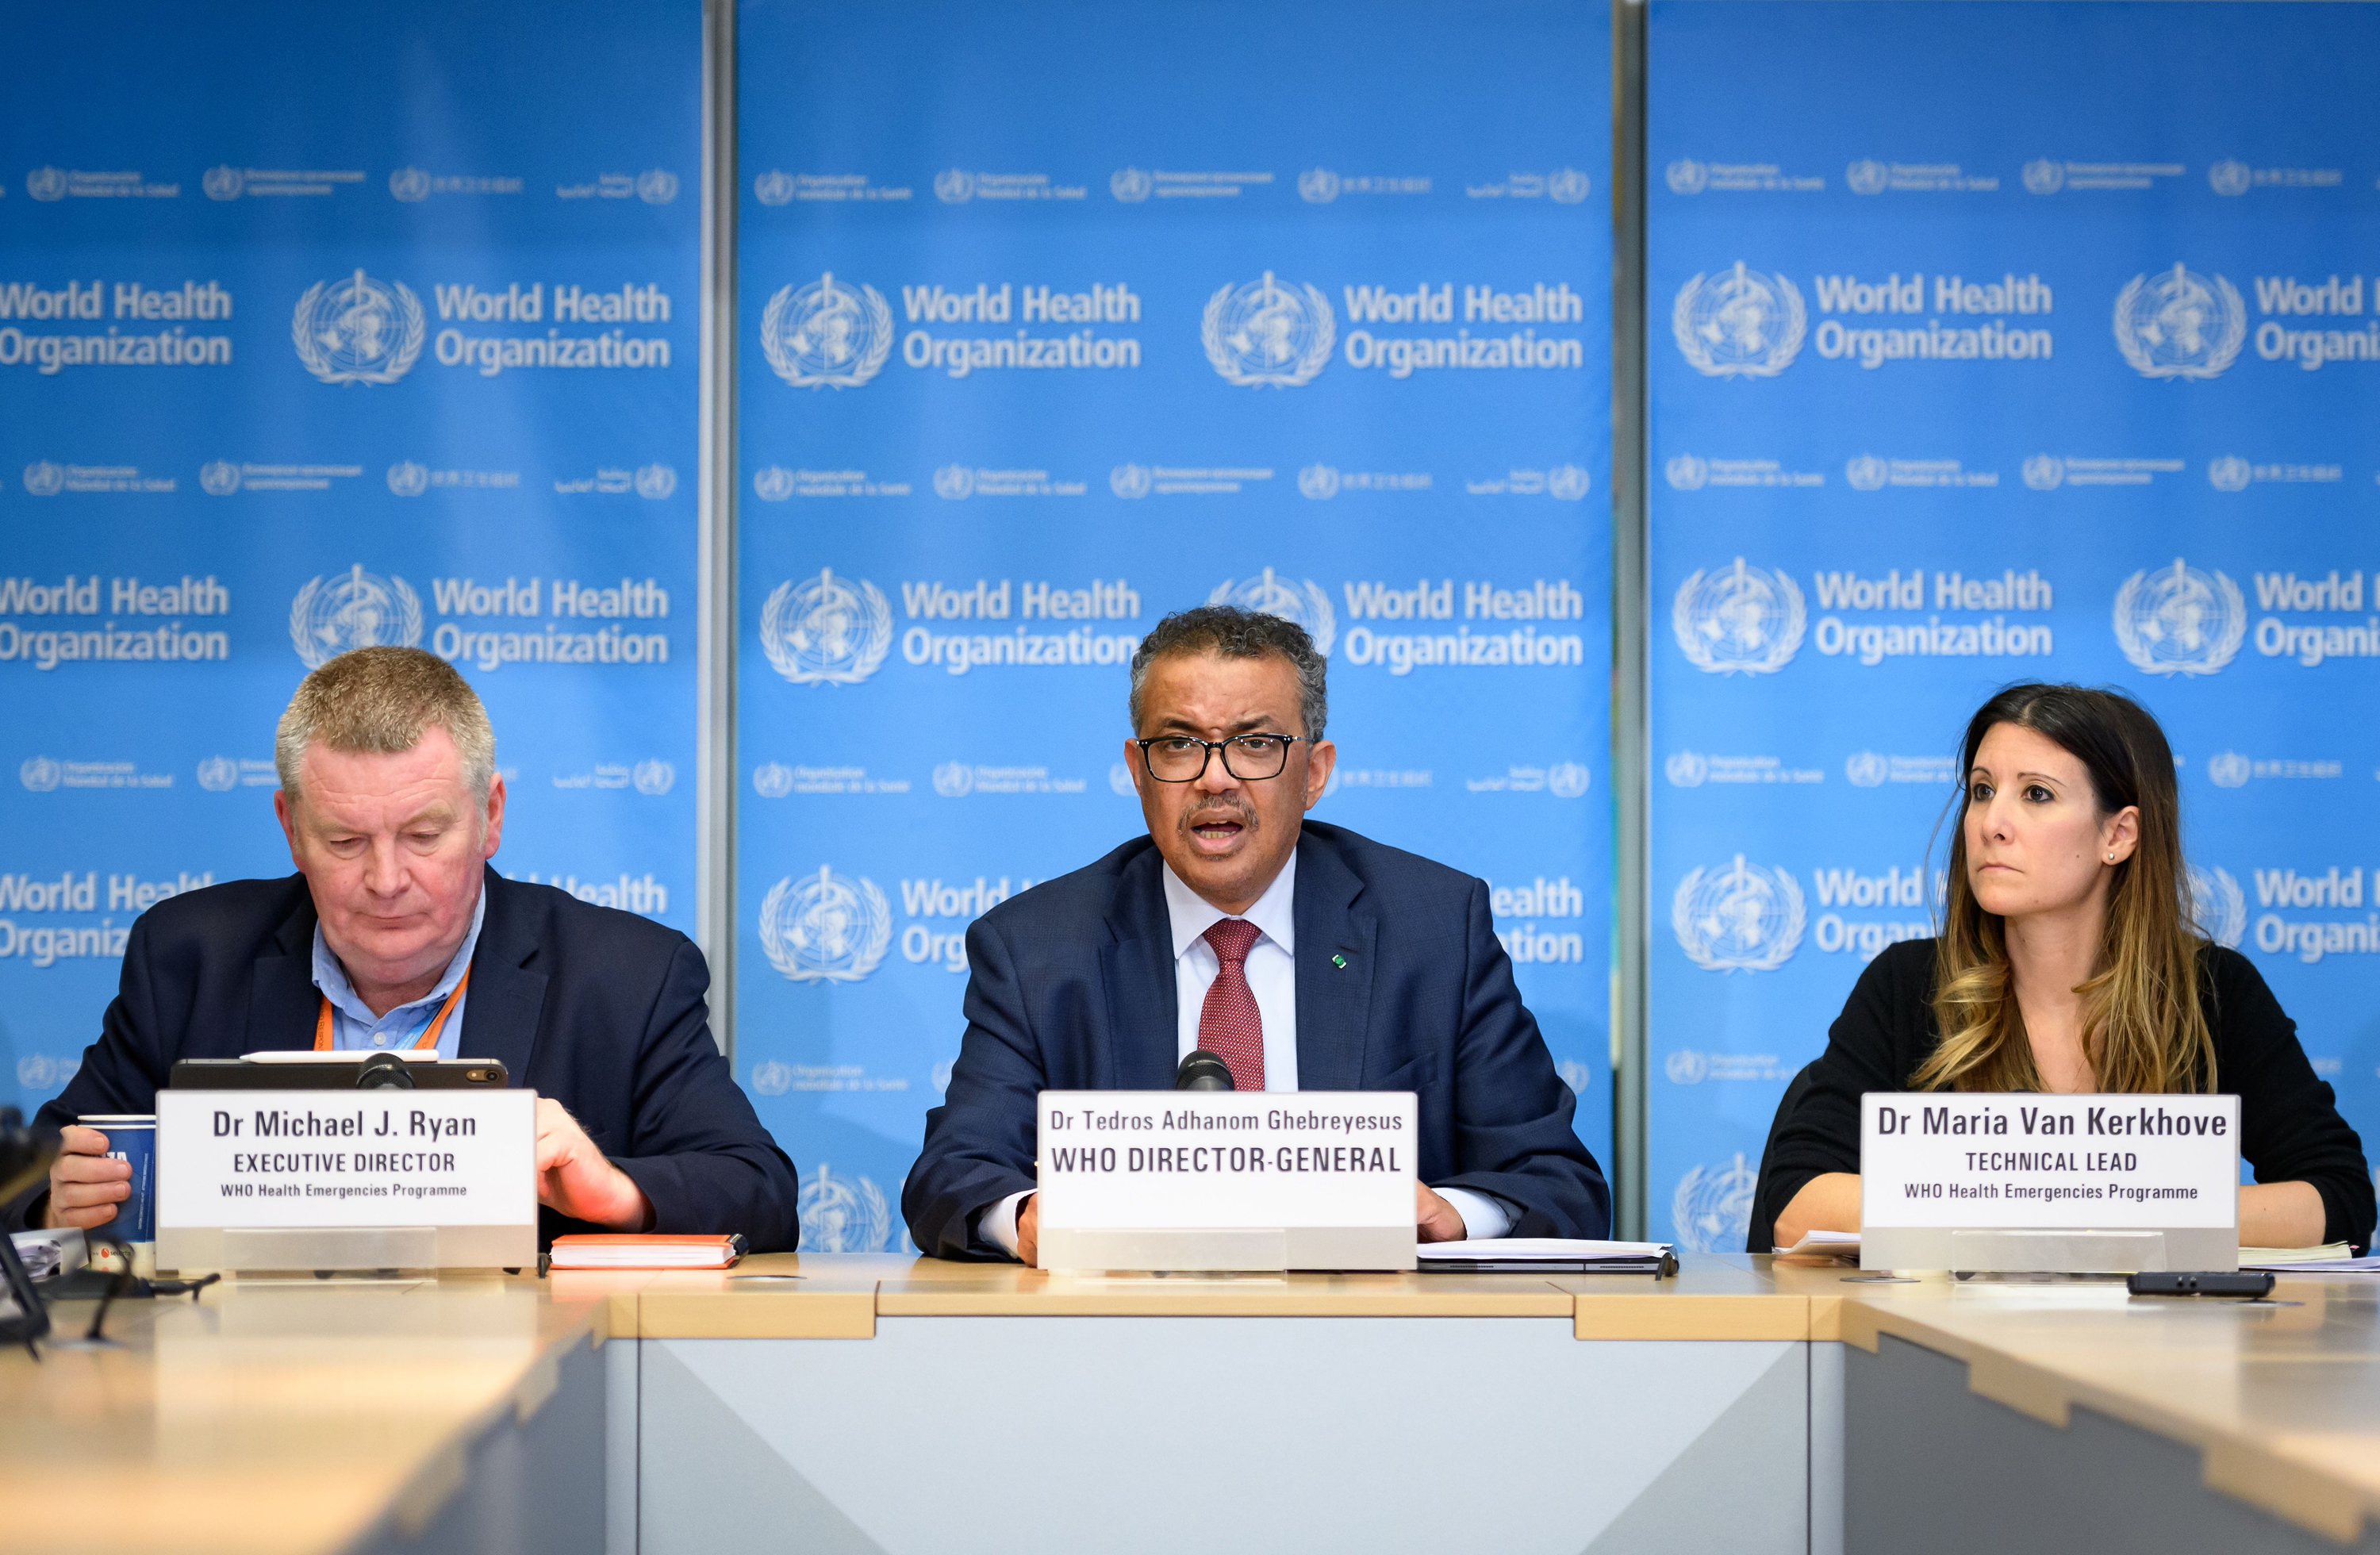 World Health Organization: Its History, Its Mission, Its Role In ...